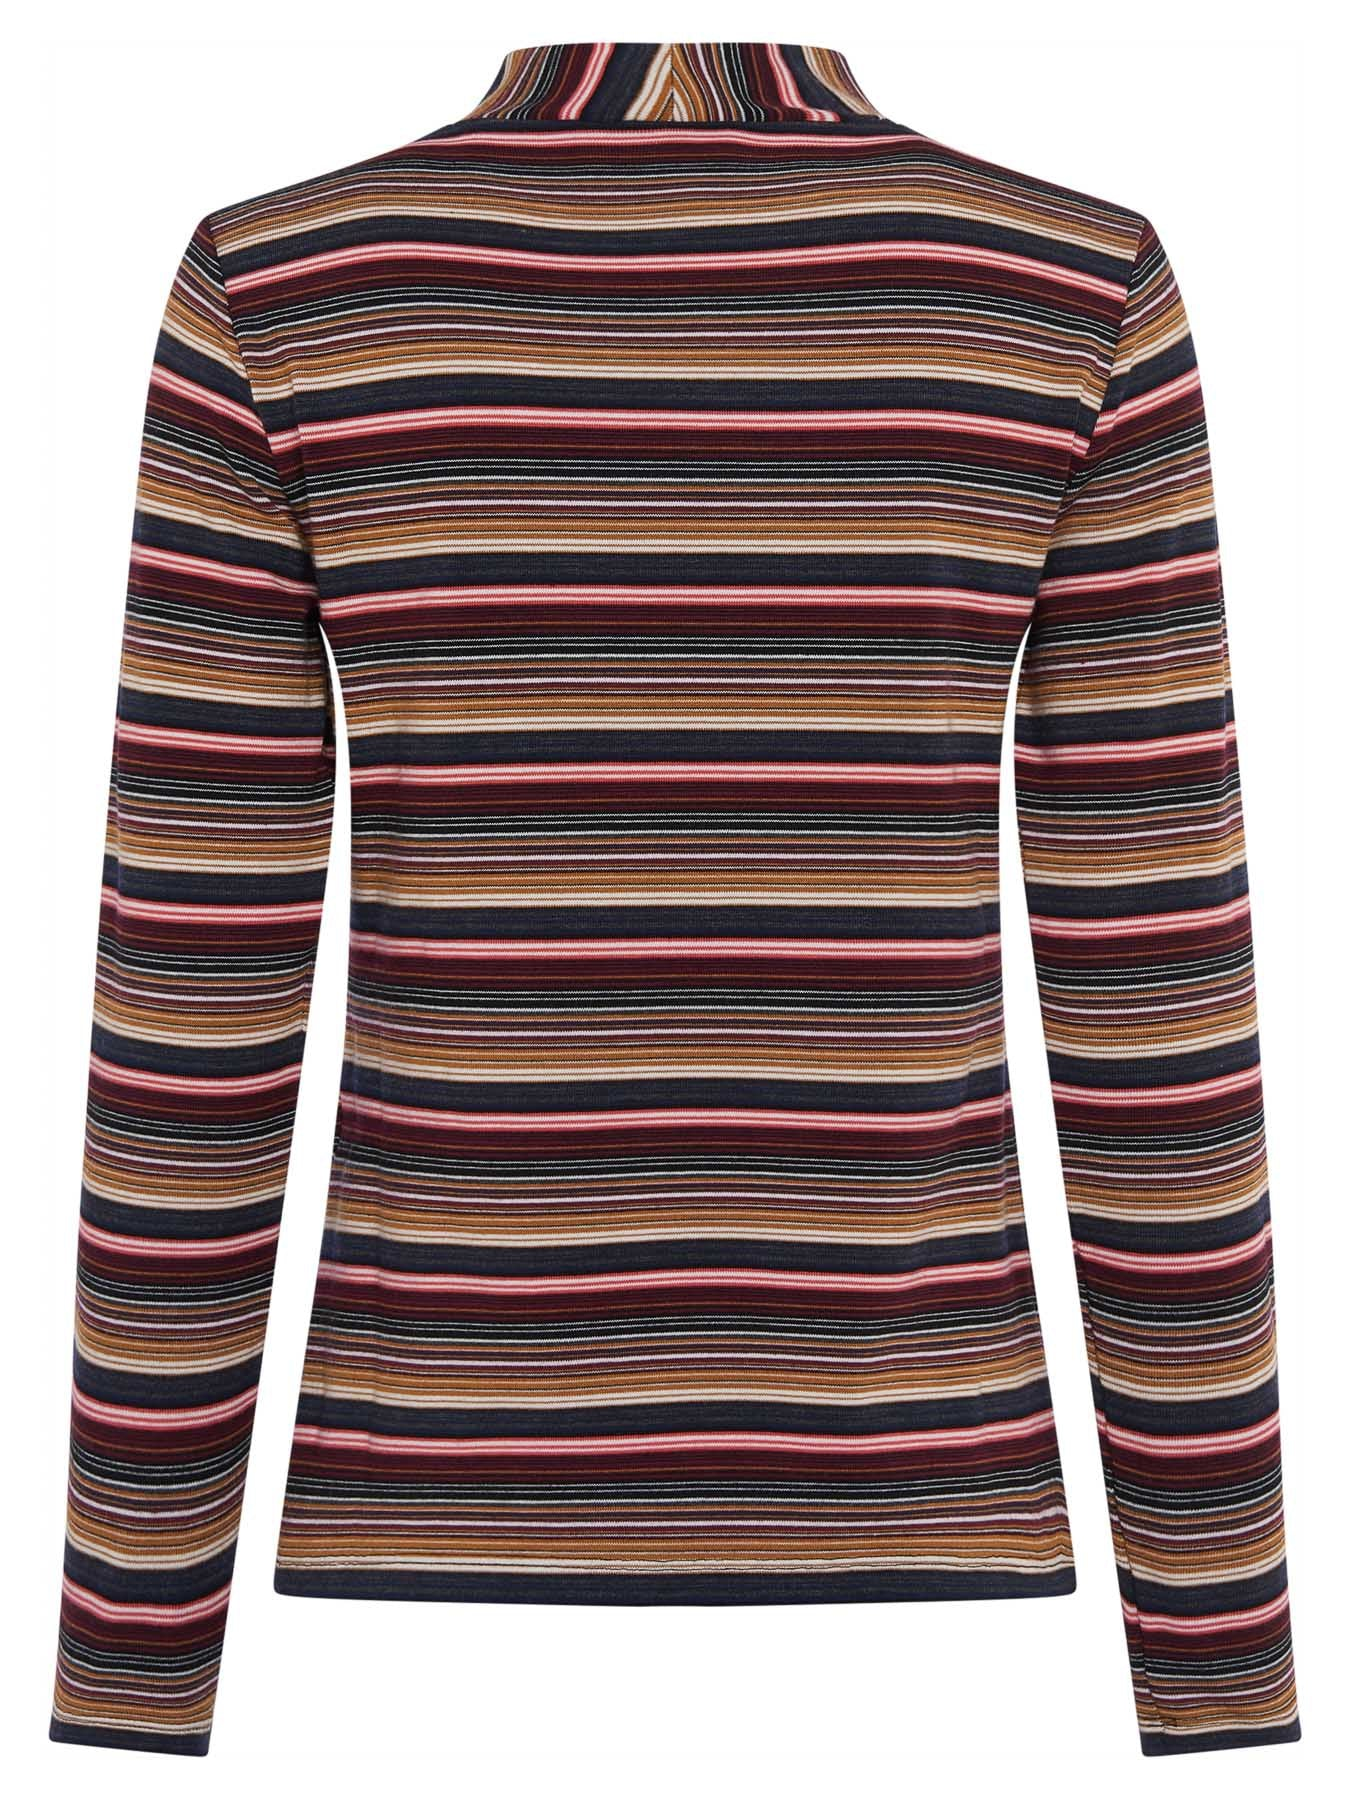 Great Plains Molly Stripe Round Neck Top for Ladies in Multi Stripe